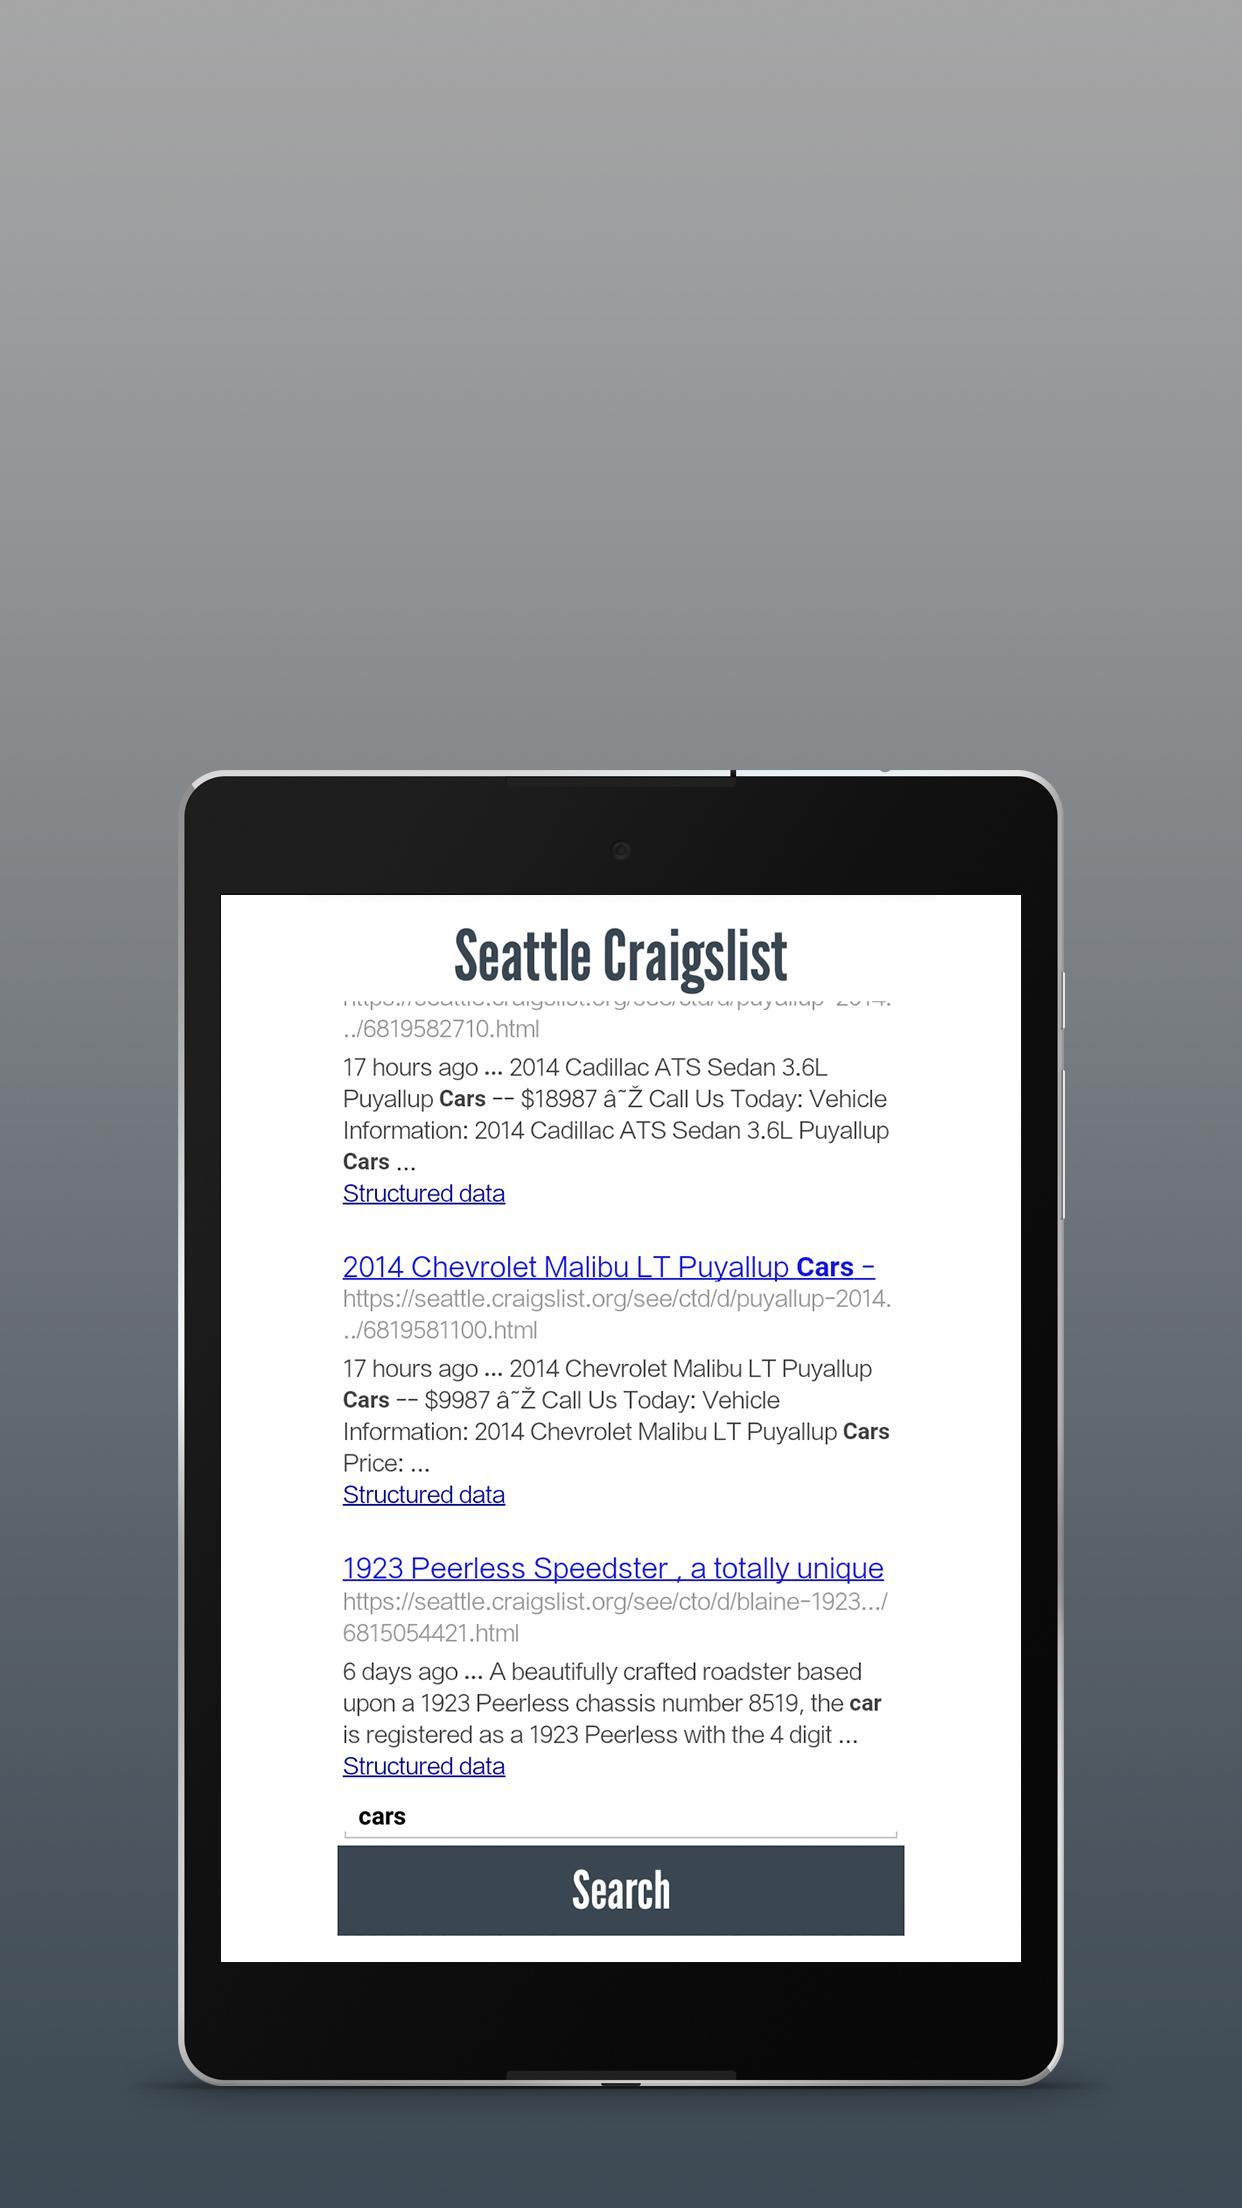 Seattle Craigslist for Android - APK Download